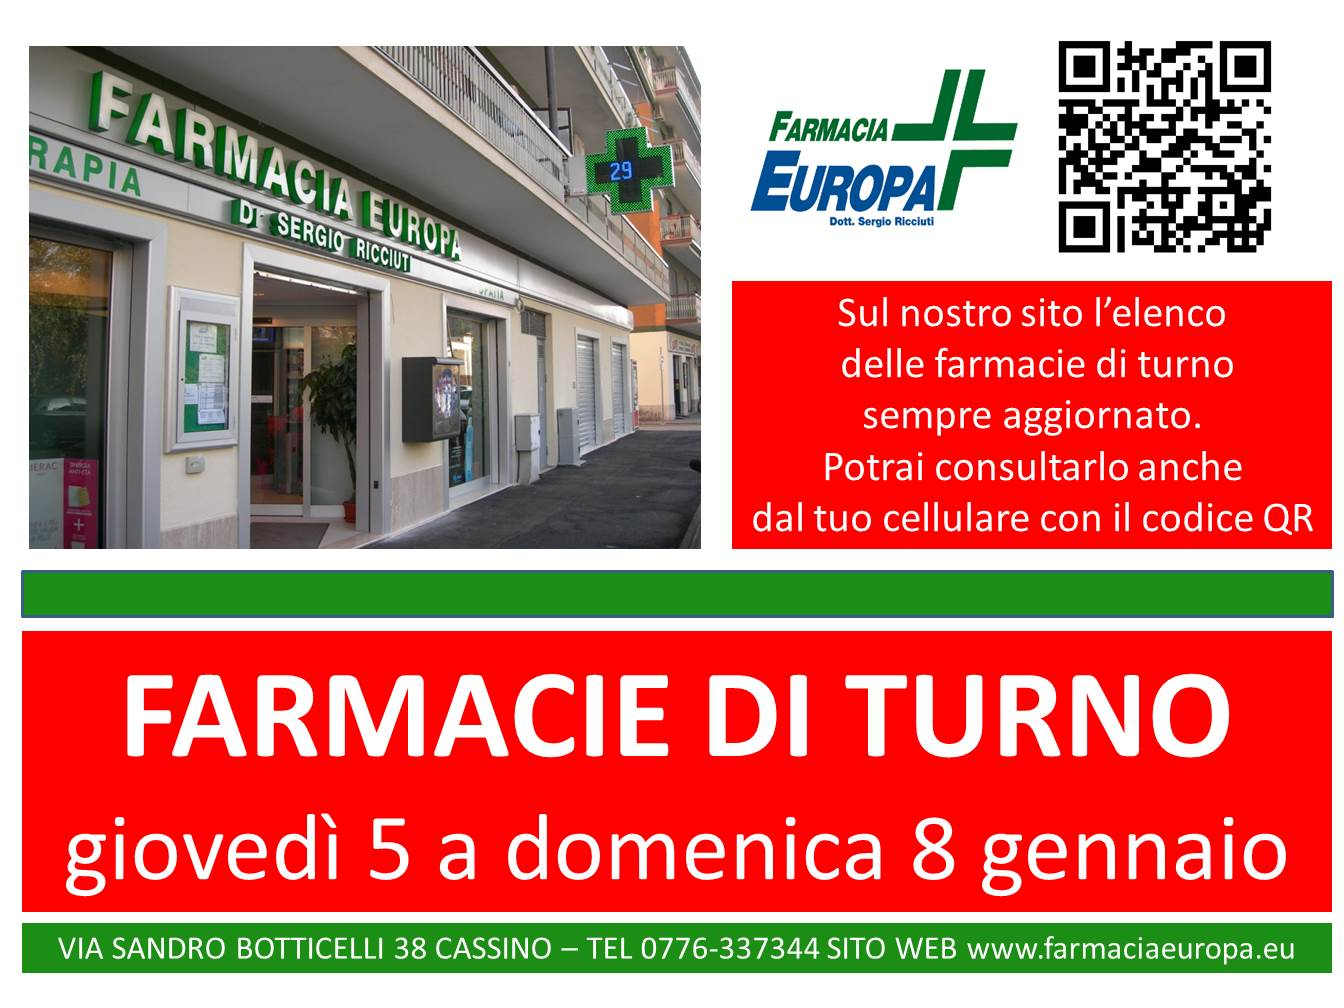 farmacie di turno 5 8 gen 2017